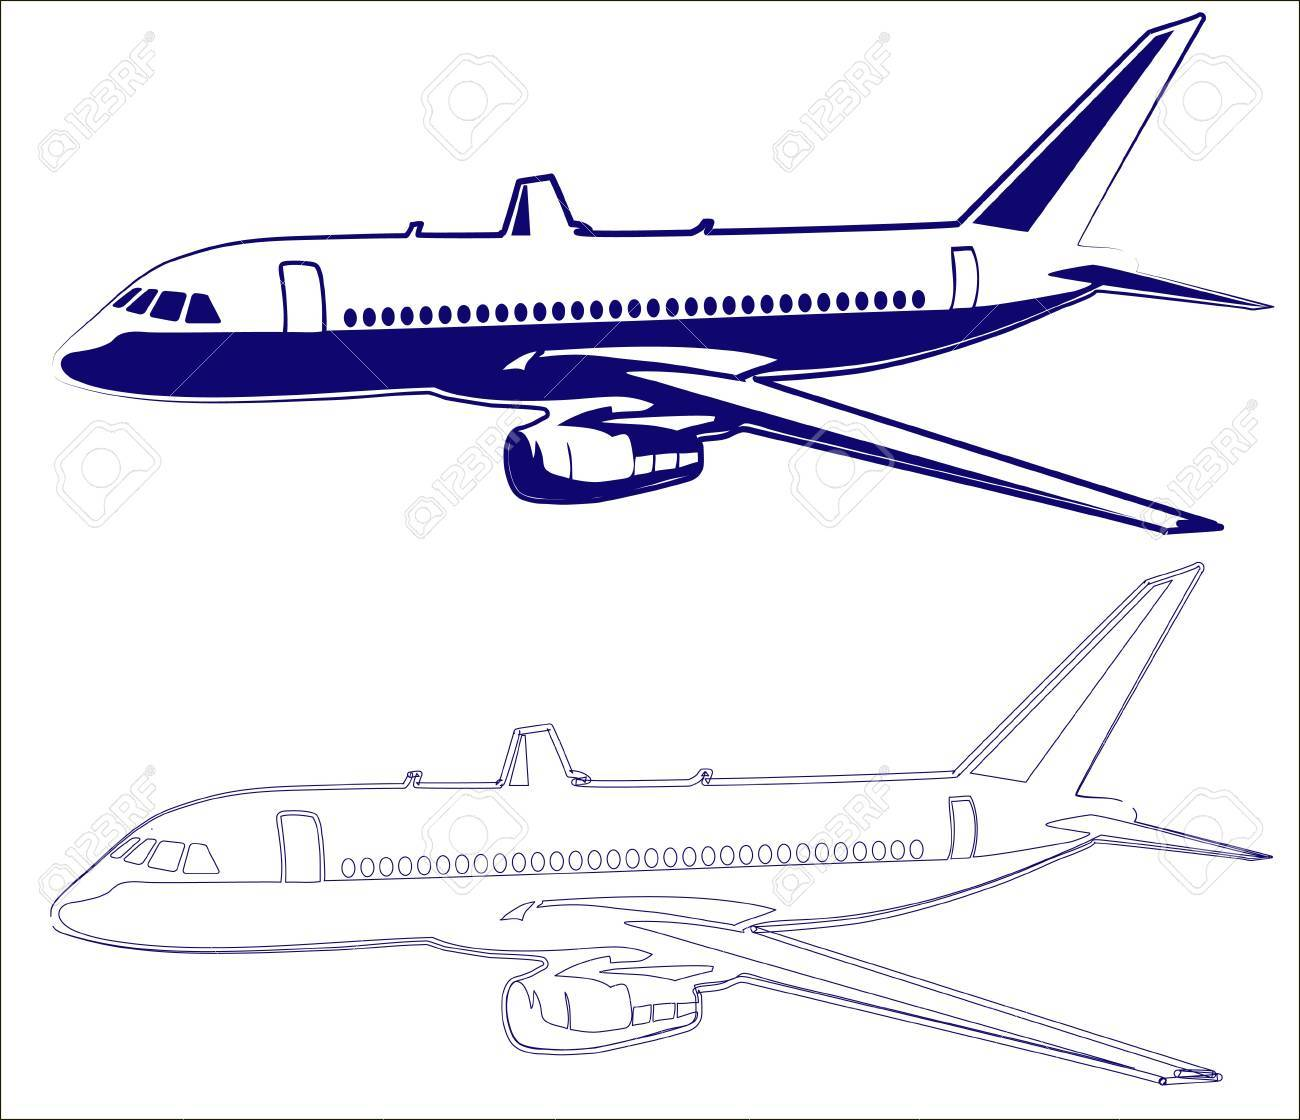 1300x1120 Plane Drawing Royalty Free Cliparts, Vectors, And Stock